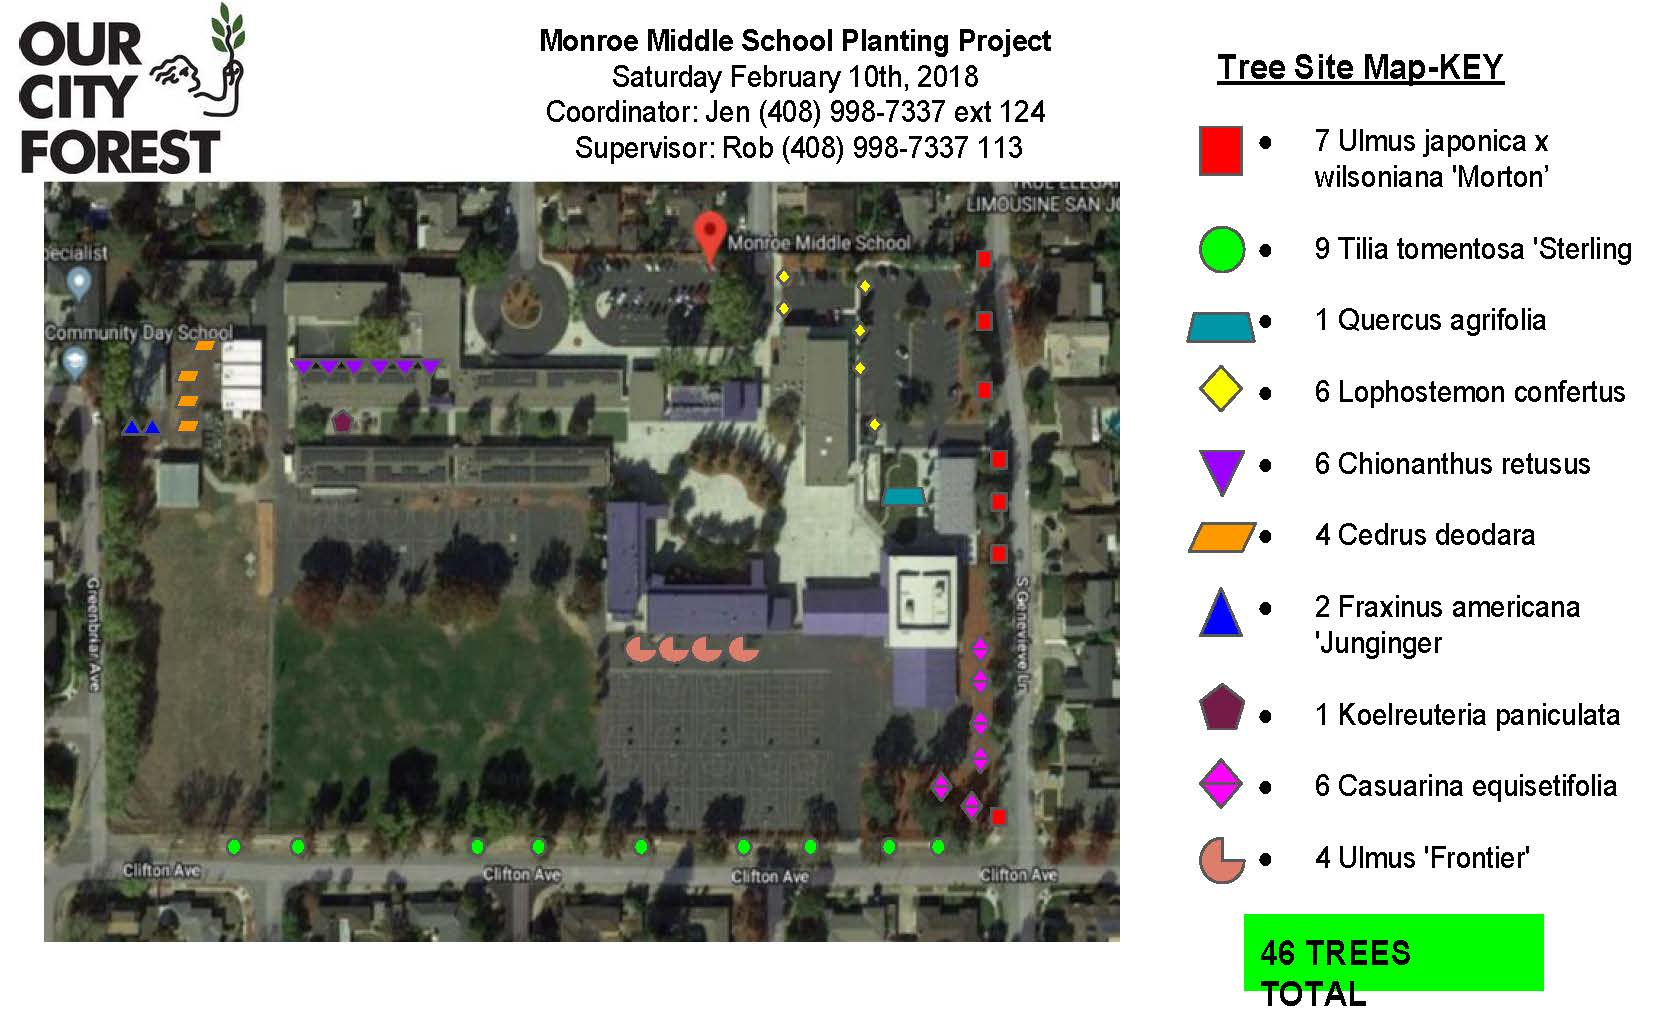 These are the trees (indicated by the red squares (7) and green circles (9), 16 total that Hamann Park would be responsible for watering, although part of this burden would potentially be shared with Monroe/Campbell Unified School District (they have already committed to supplying the water).